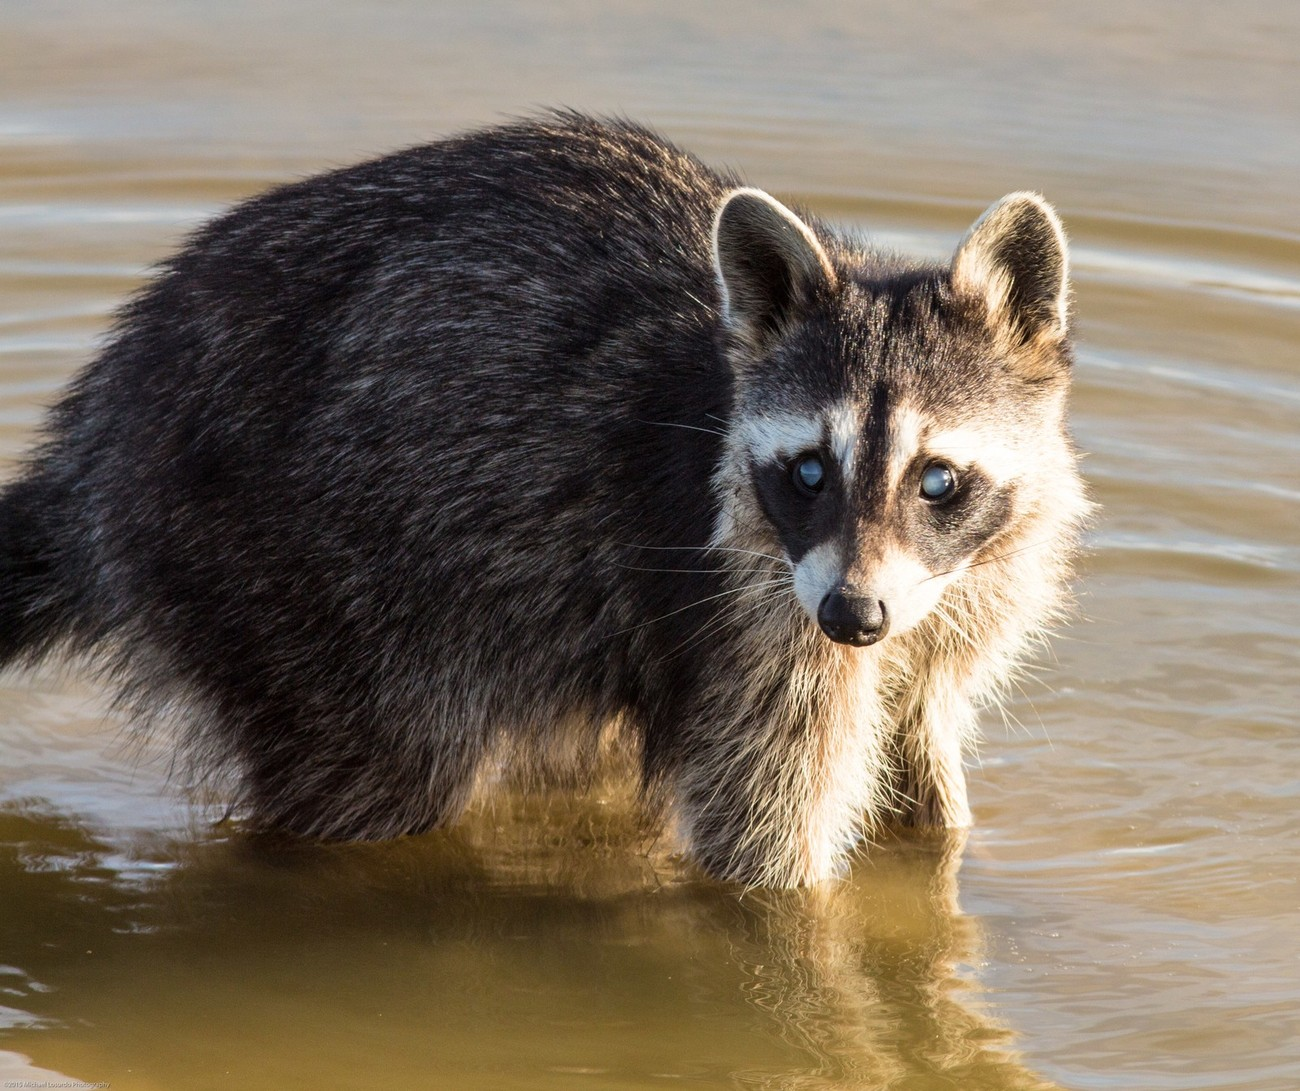 Haggerman Wildlife refuge, Sherman, TX Sweet looking Racoon